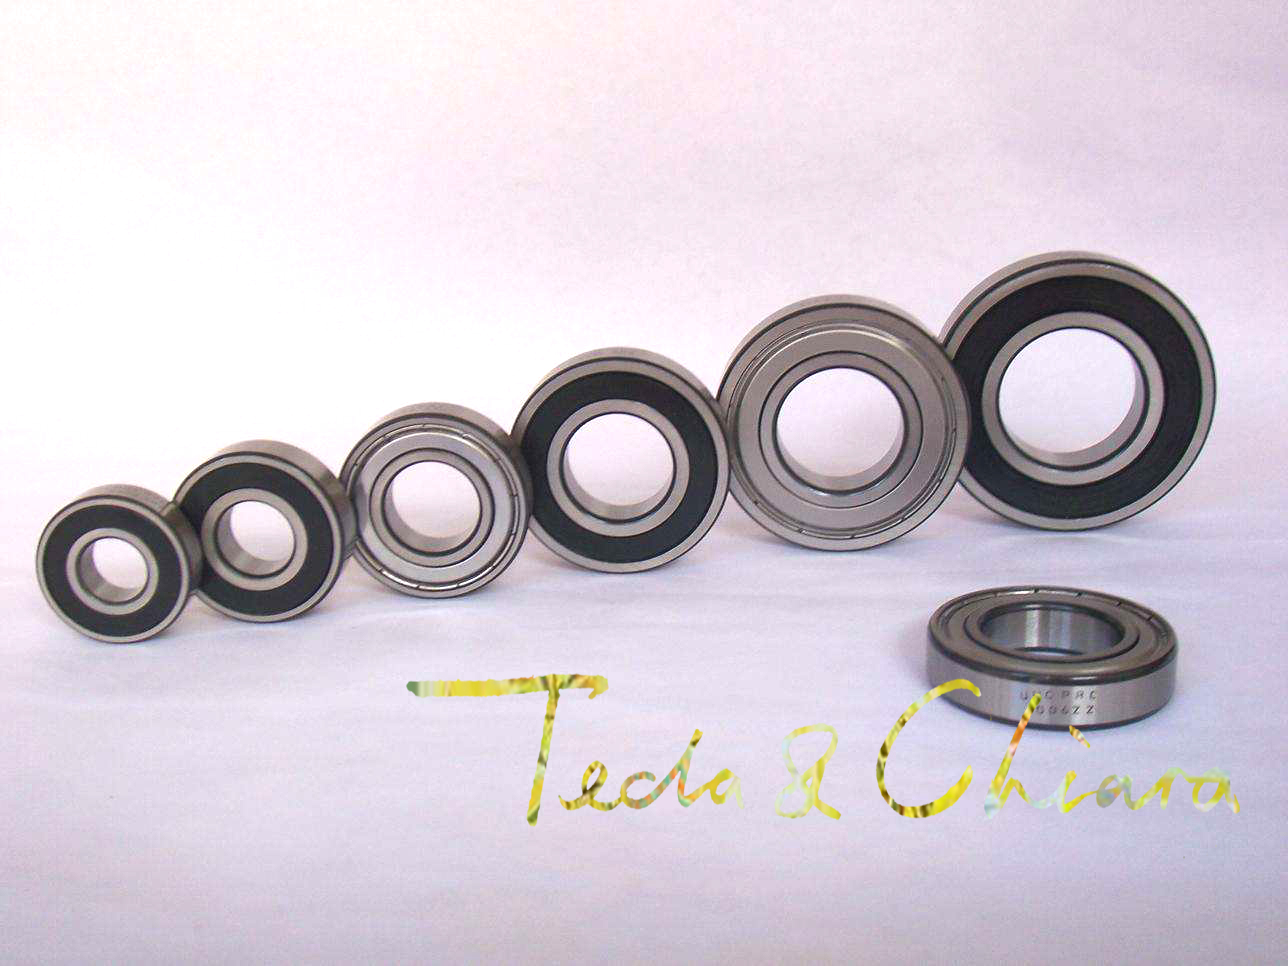 609 609ZZ 609RS 609-2Z 609Z 609-2RS ZZ RS RZ 2RZ Deep Groove Ball Bearings 9 x 24 x 7mm High Quality free shipping 25x47x12mm deep groove ball bearings 6005 zz 2z 6005zz bearing 6005zz 6005 2rs